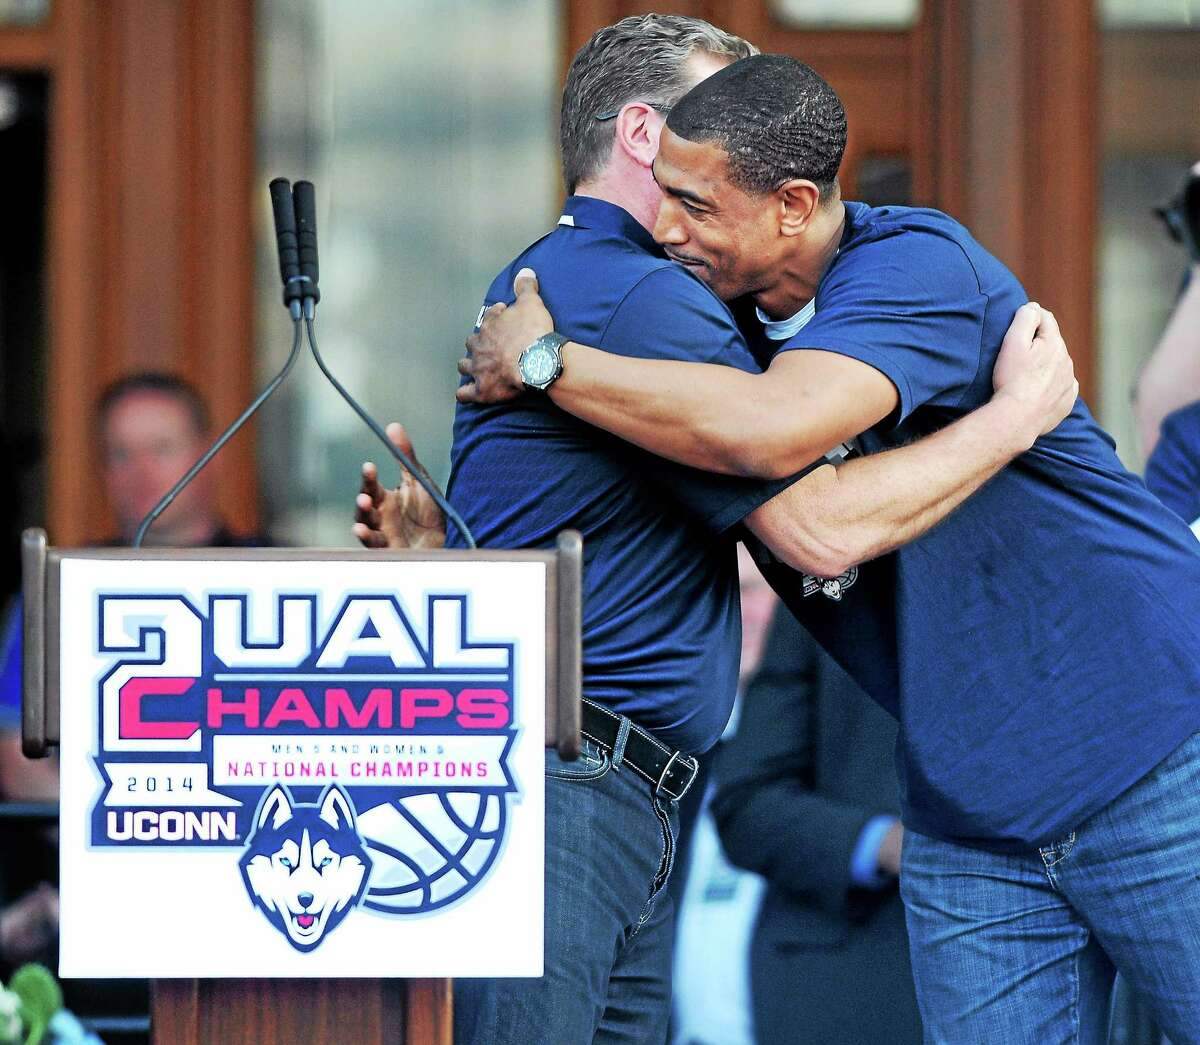 UConn men's basketball coach Kevin Ollie, right, hugs UConn women's coach Geno Auriemma at a victory rally in front of the Capitol Building in Hartford on Sunday.